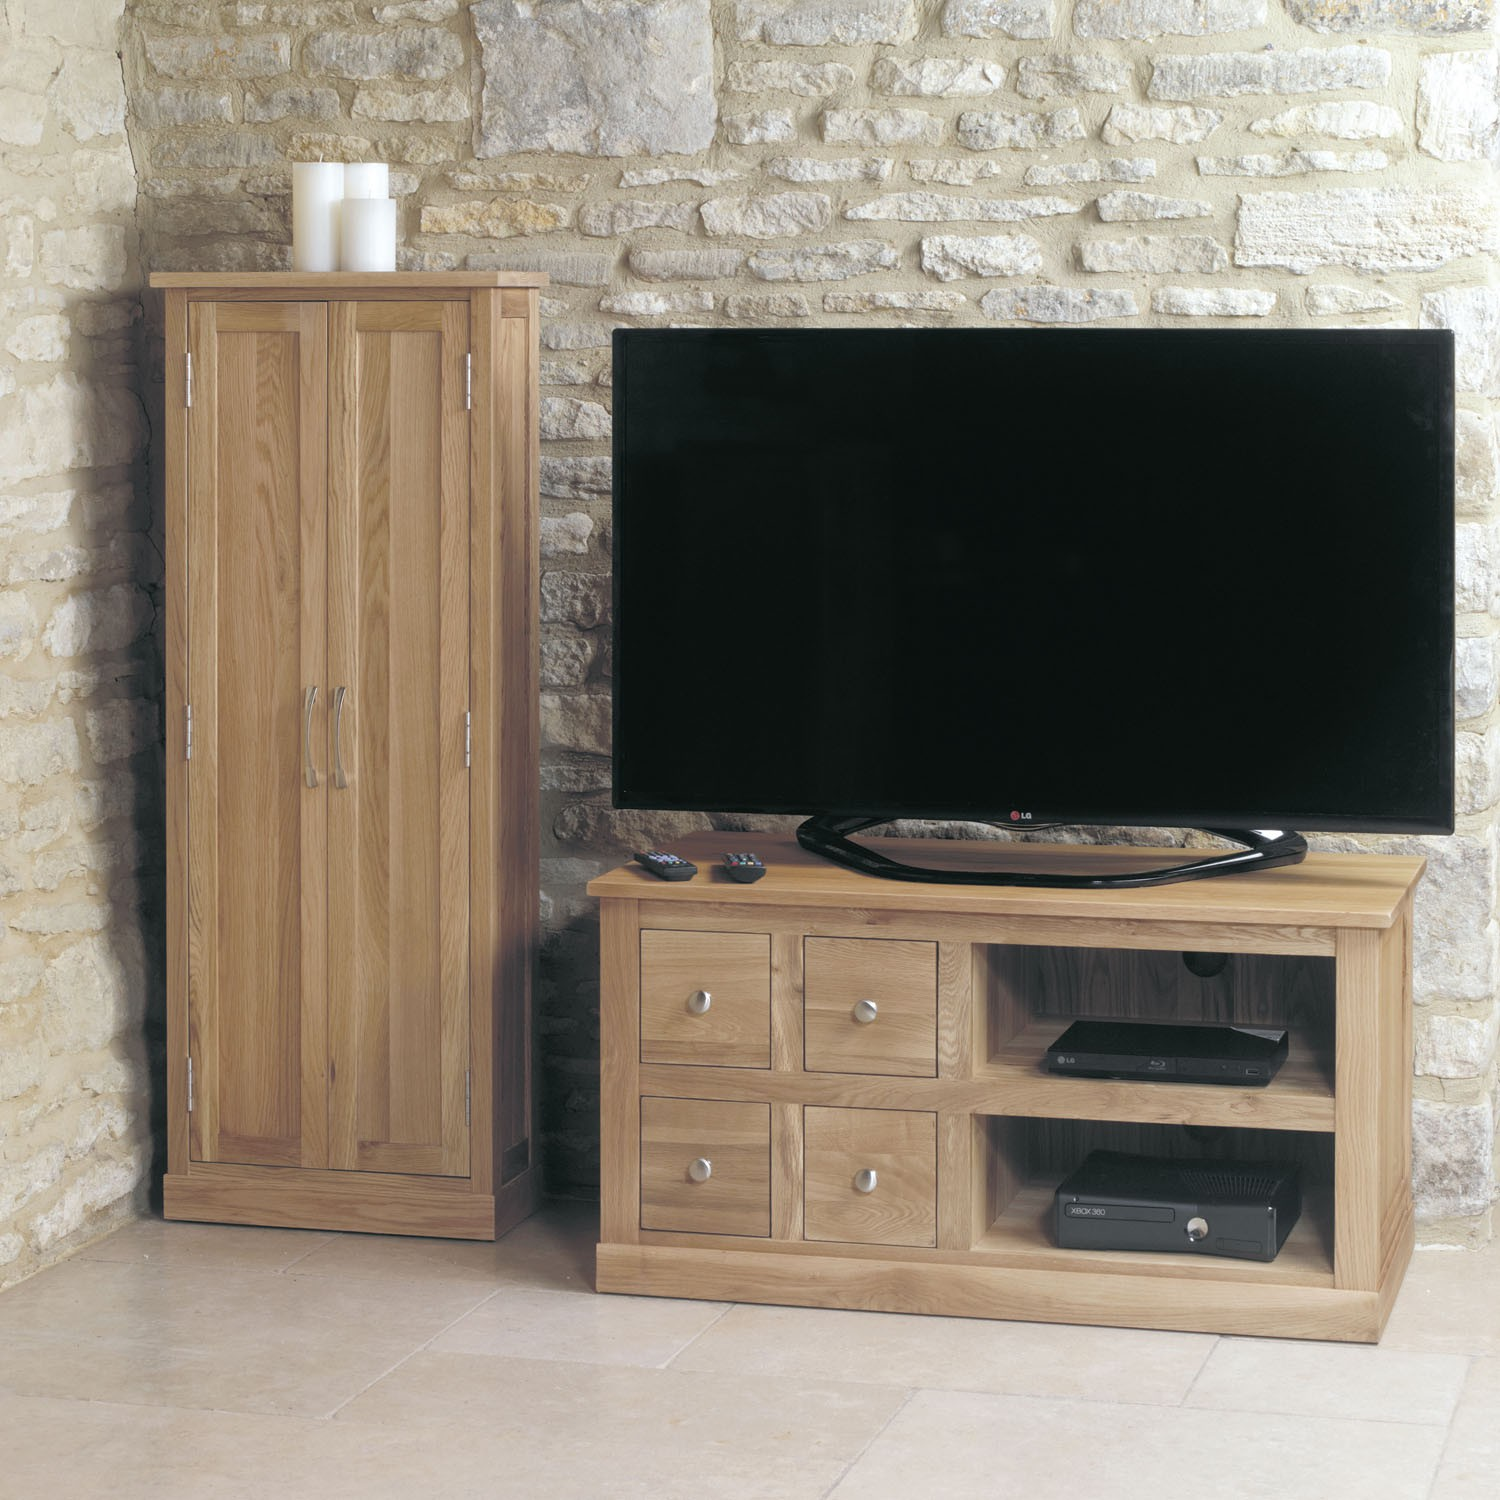 mobel oak oak tv stands and cabinets baumhaus mobel solid oak extra